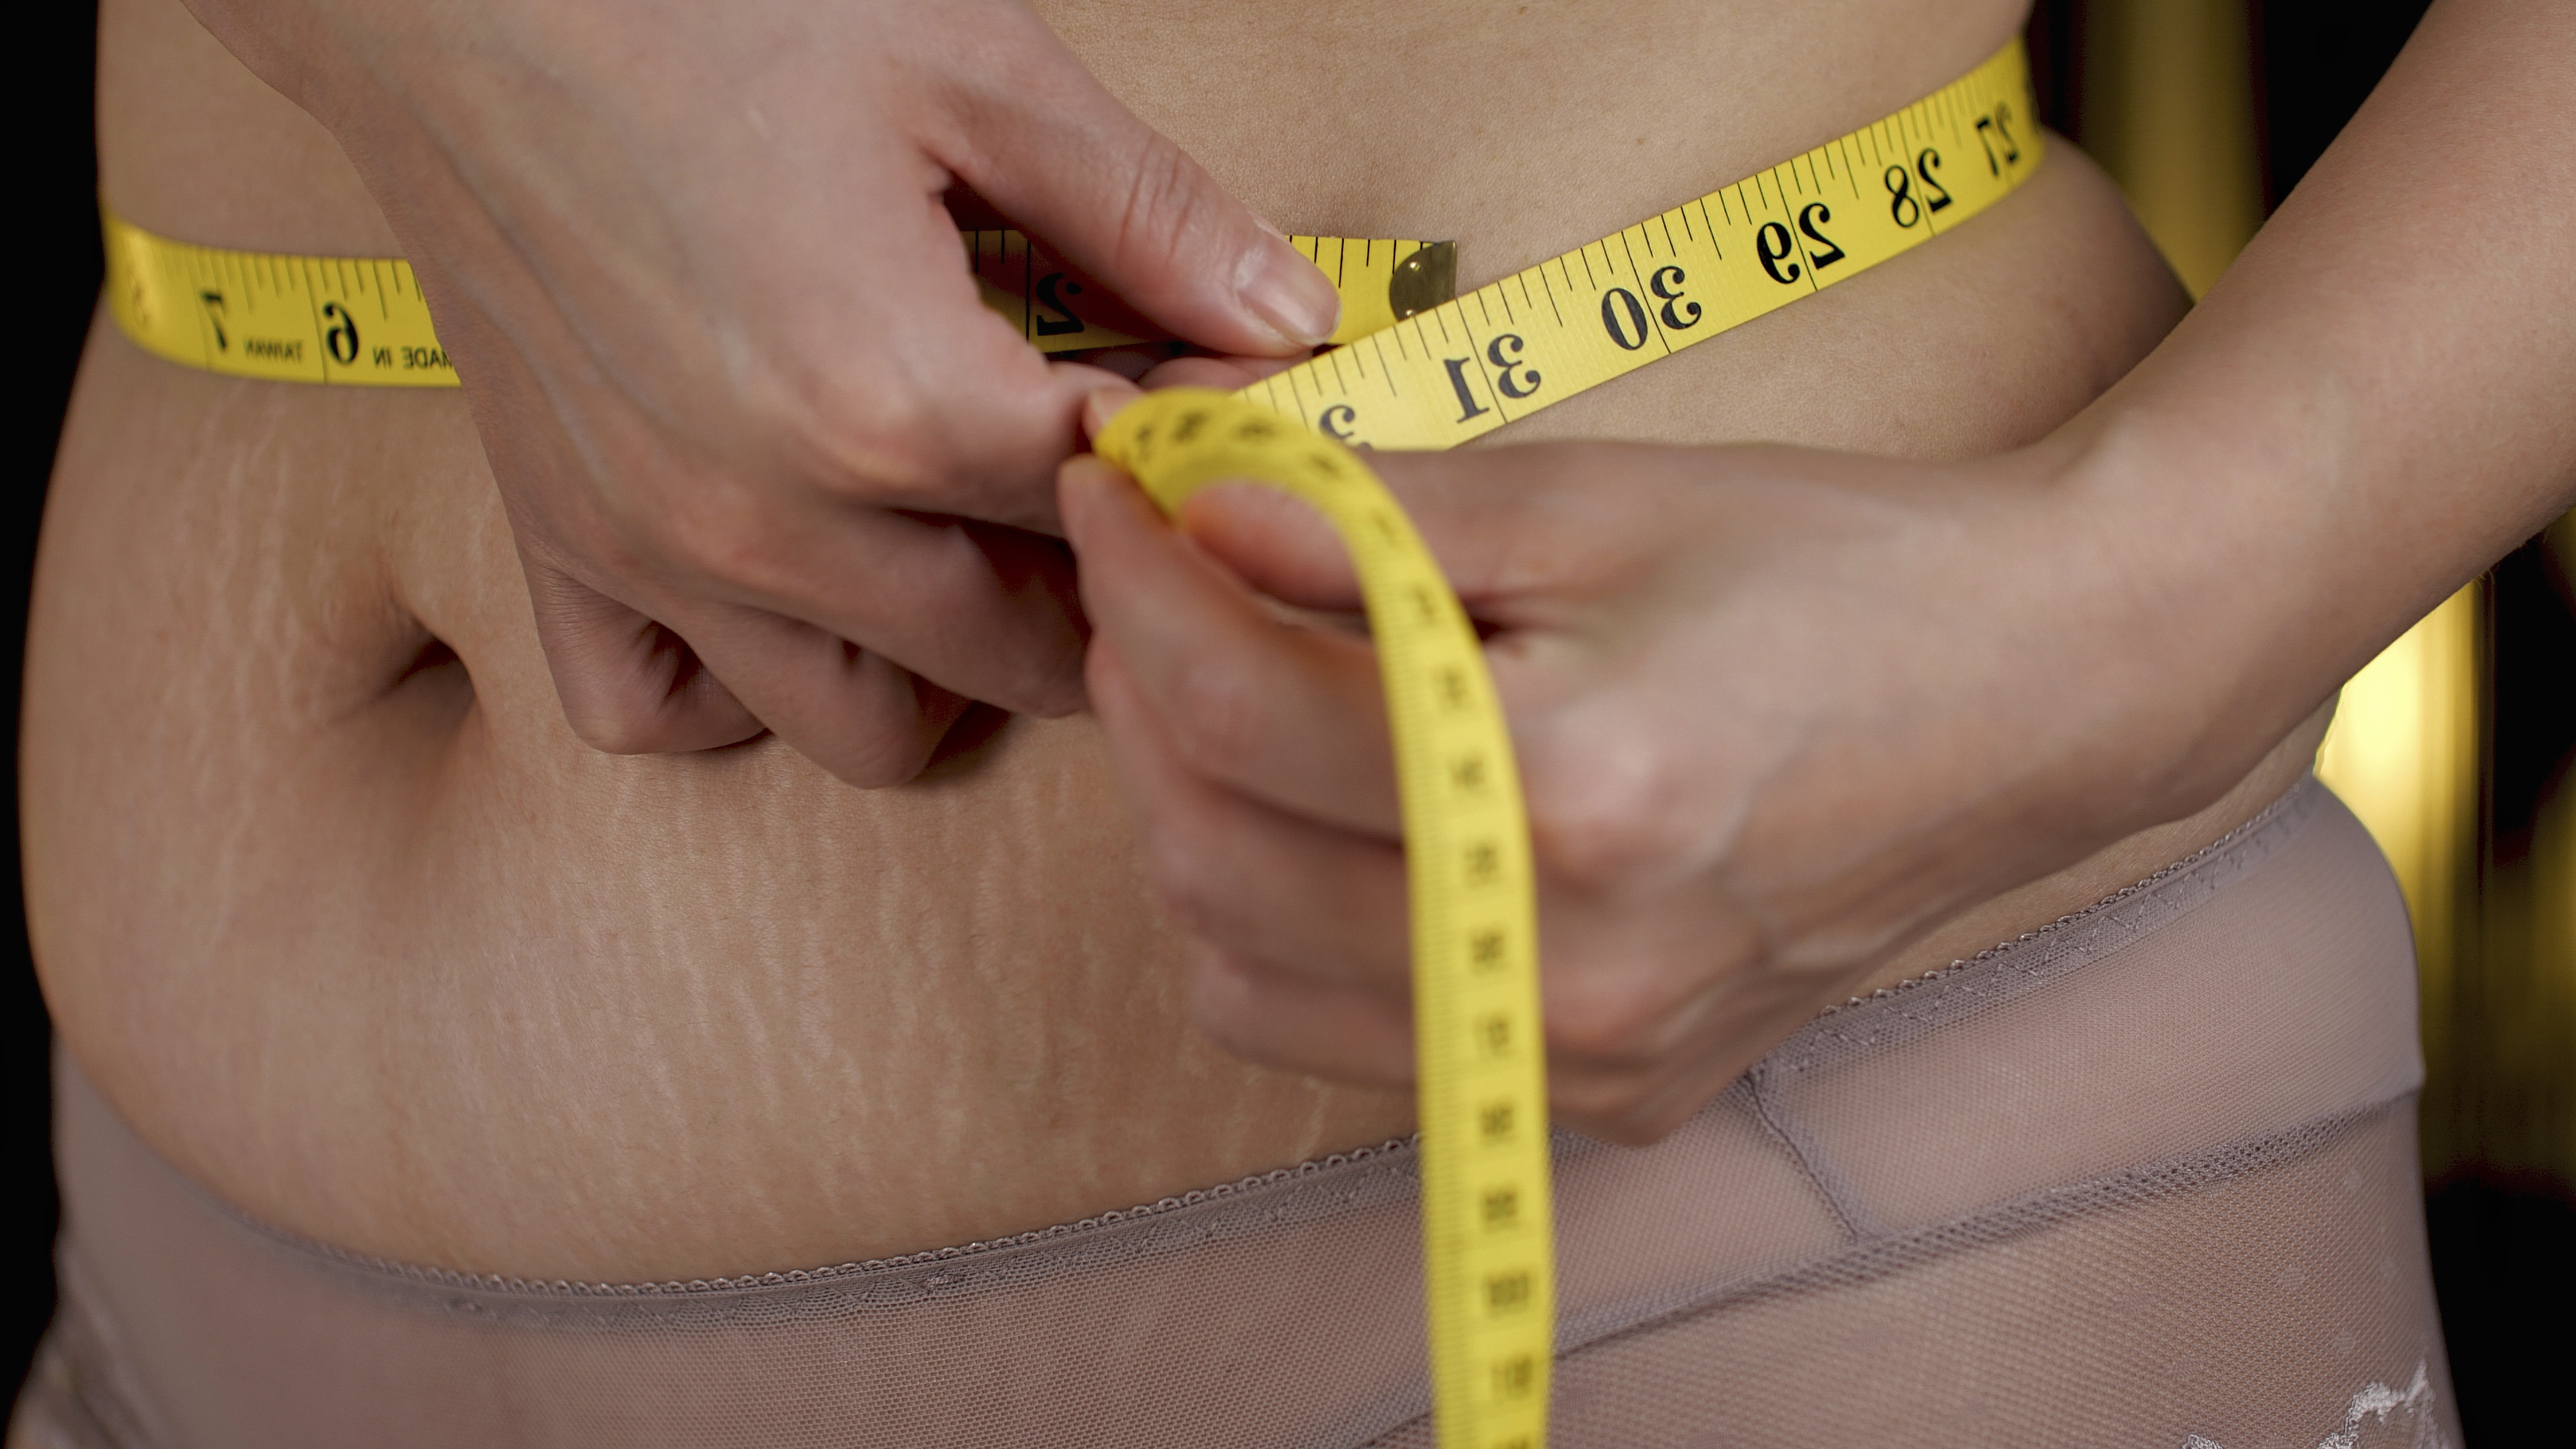 Health Fitness Stretch Marks And Weight Loss Can Be A Real Battle